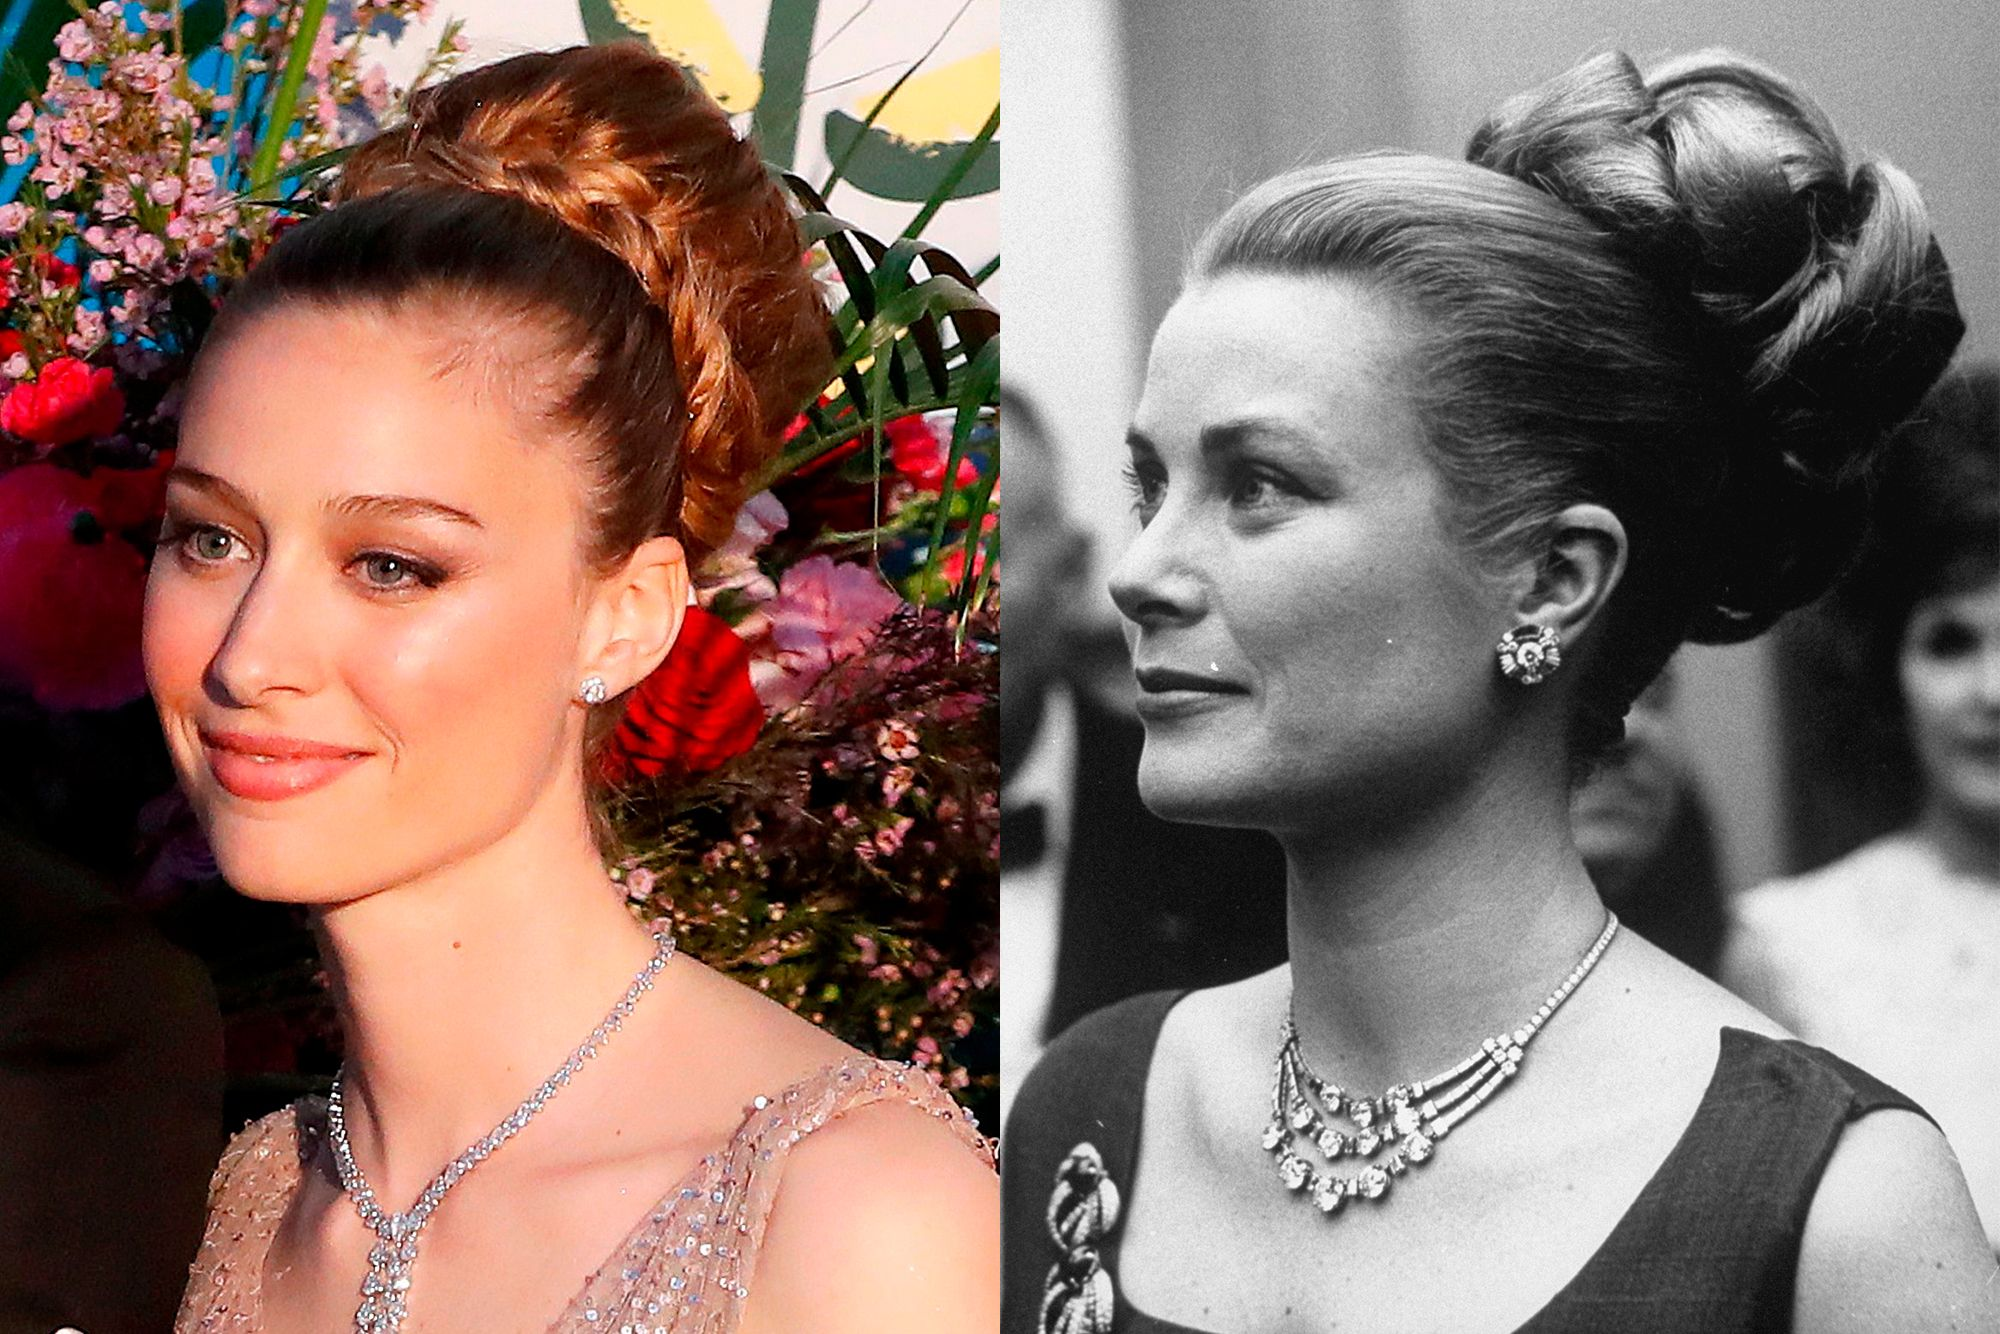 Beatrice Casiraghi, wife of Grace Kelly's grandson Pierre Casiraghi , paid tribute to the late princess by echoing her iconic hairstyle.